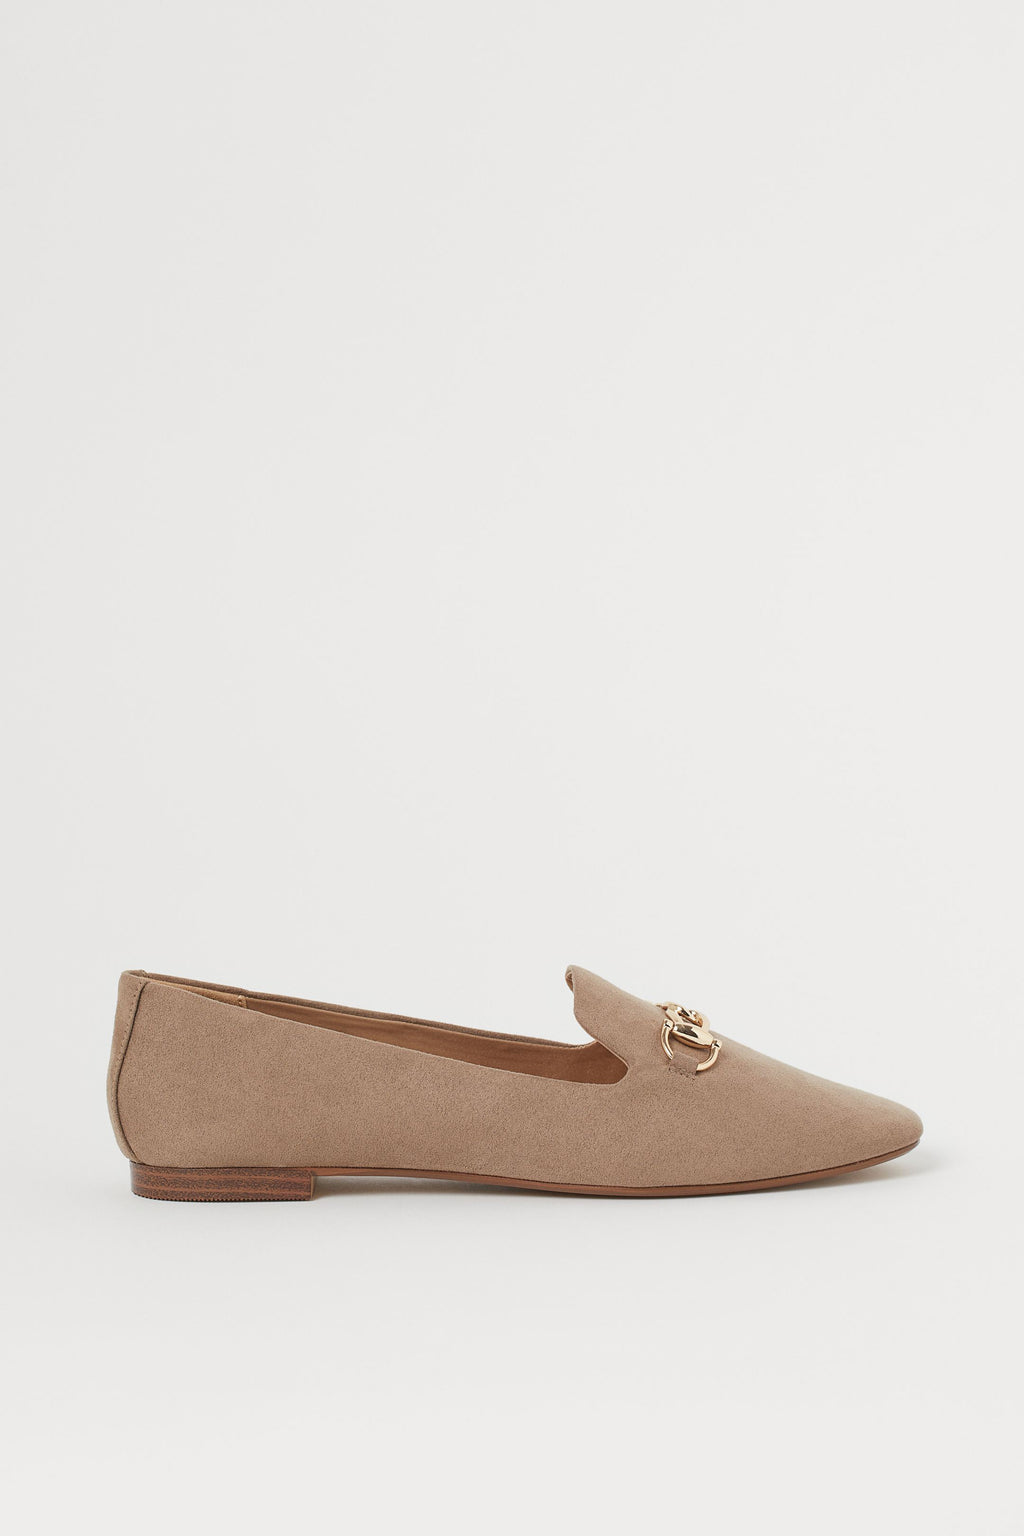 H & M BUCKLED LOAFERS IN GREIGE